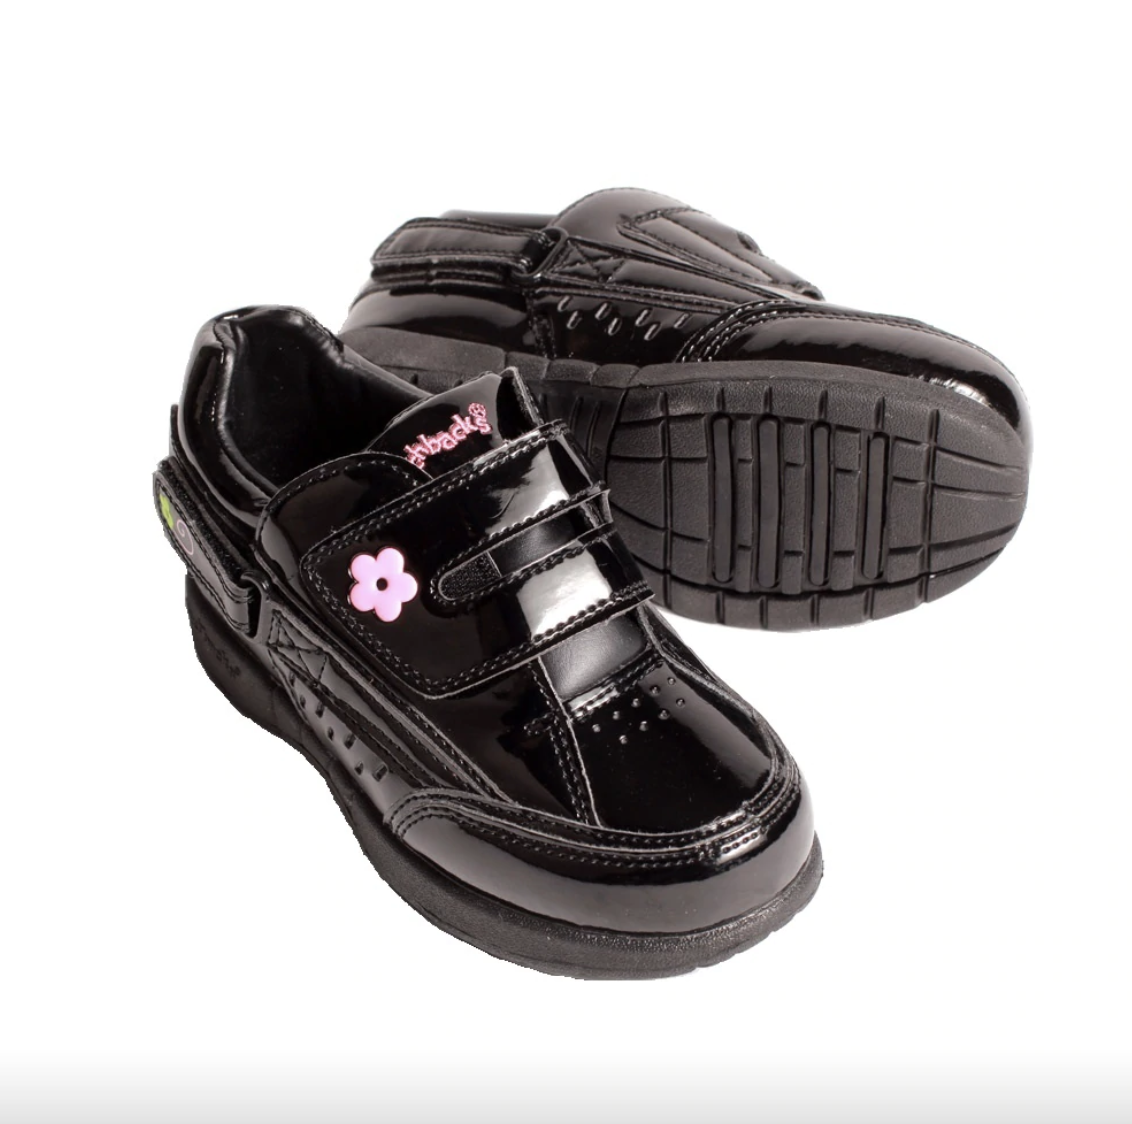 Hatchback Black Patent